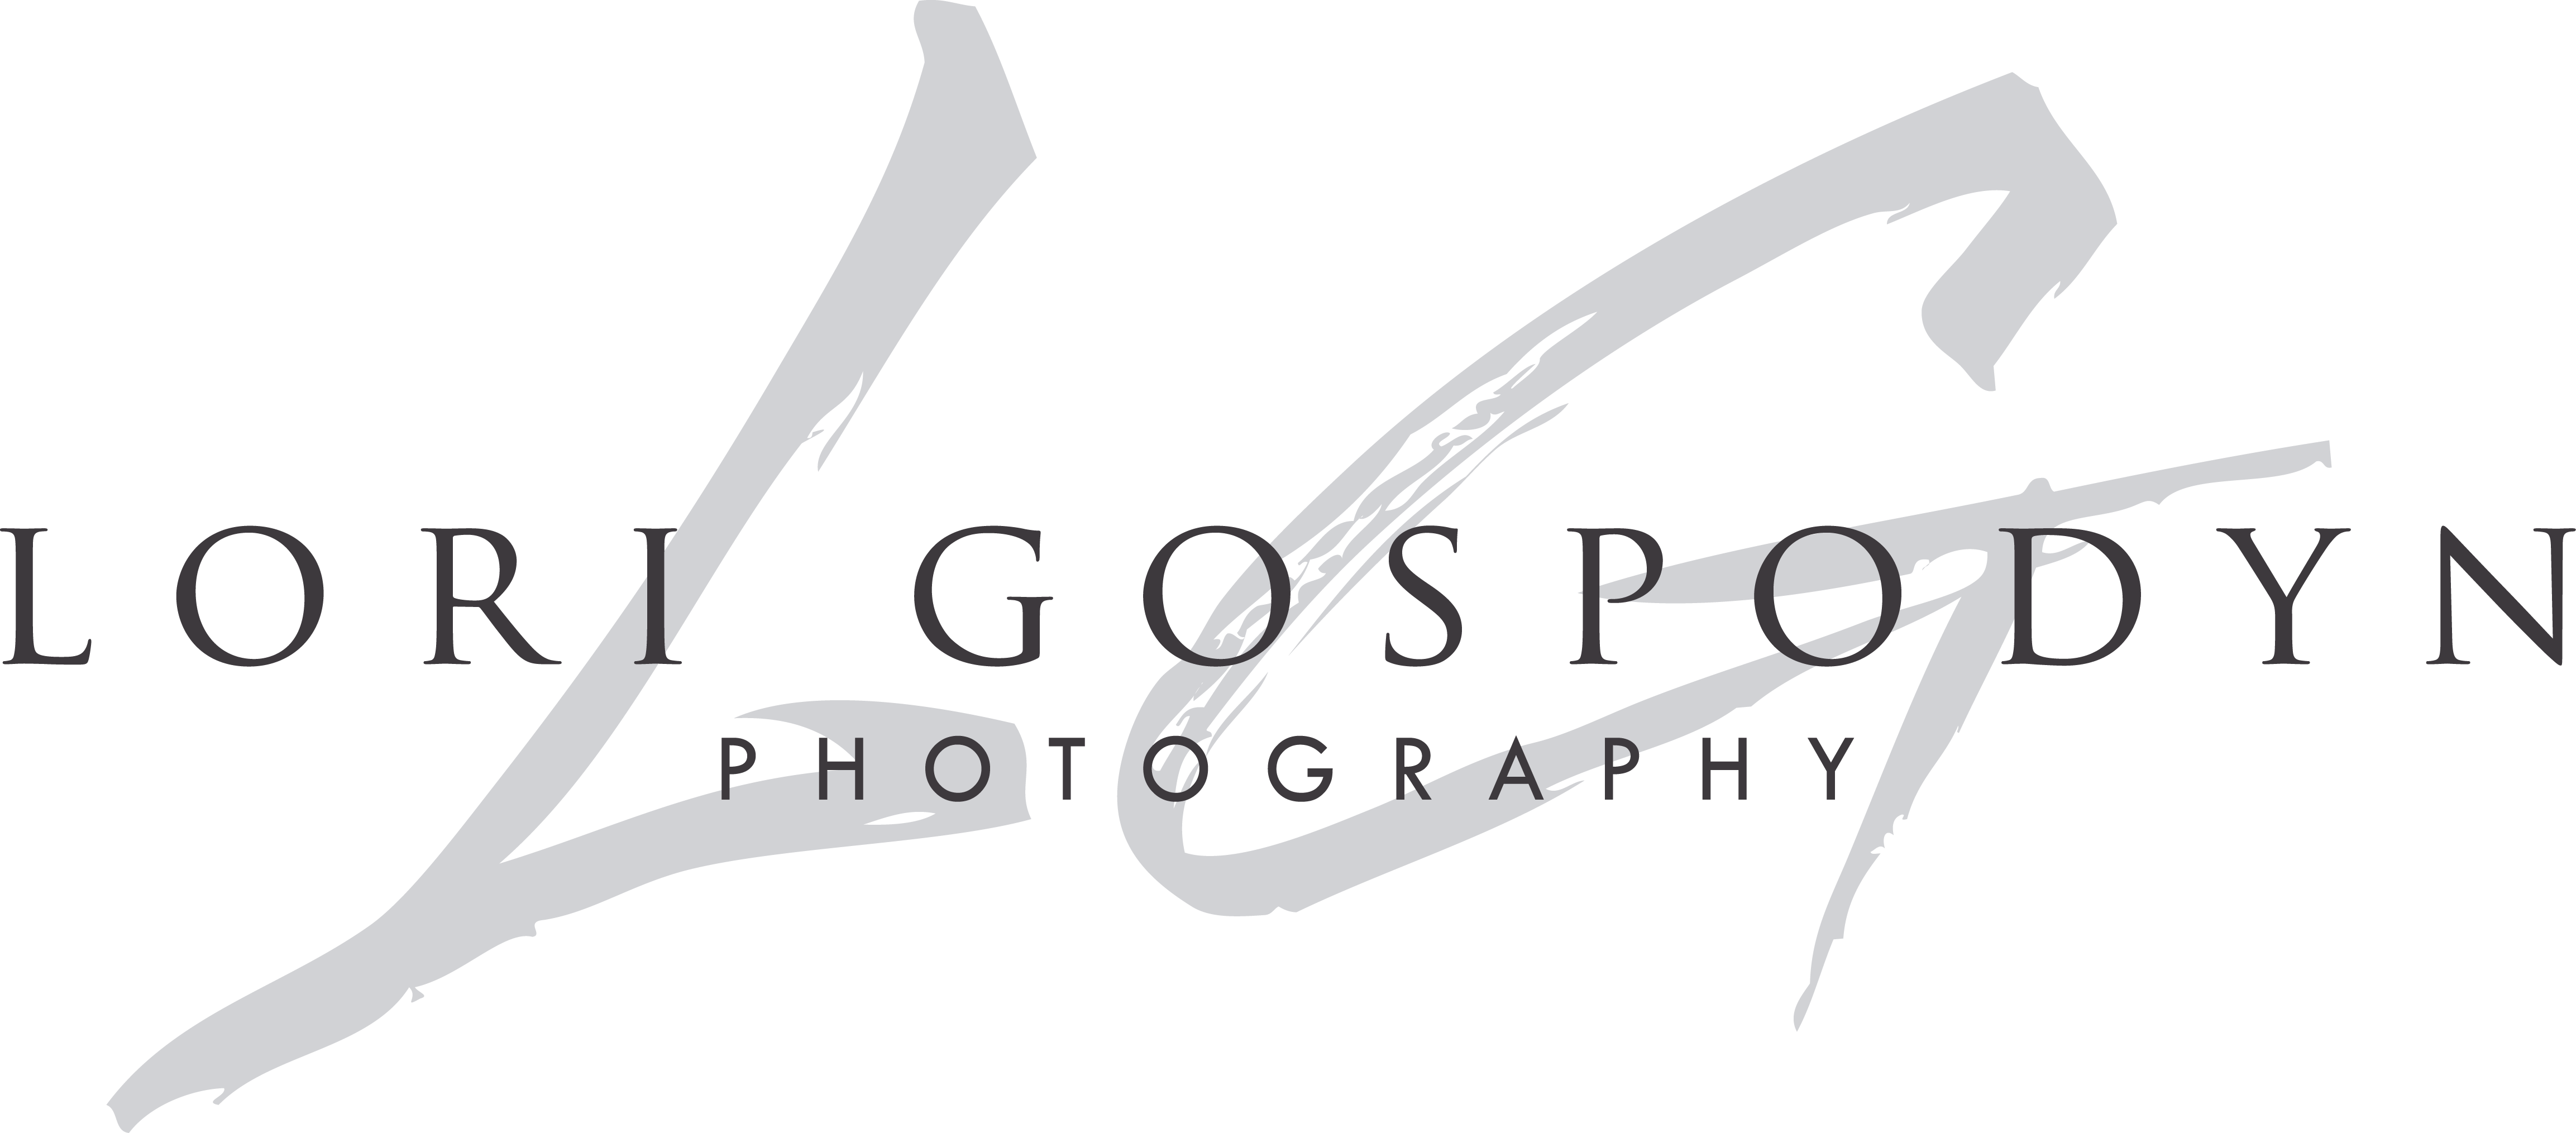 Lori Gospodyn Photography